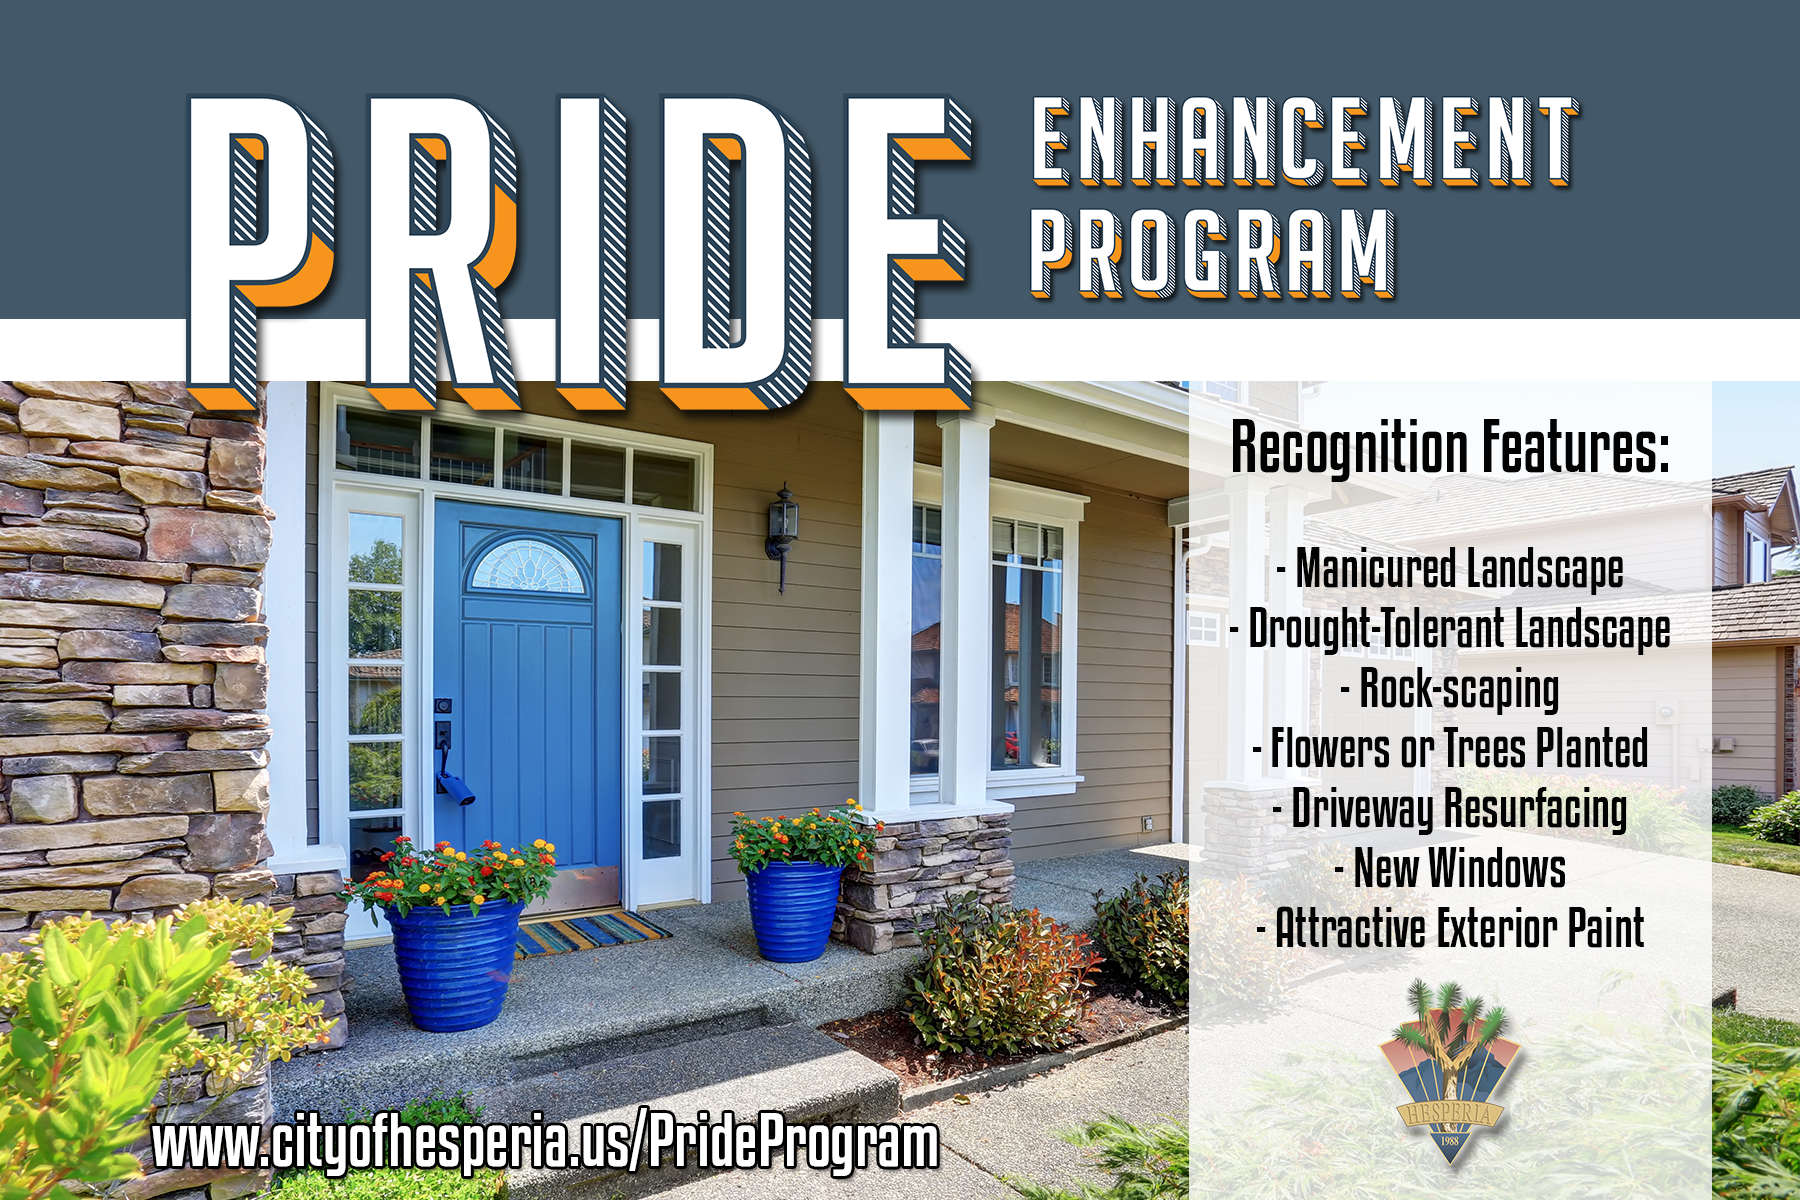 Pride Enhancement Program